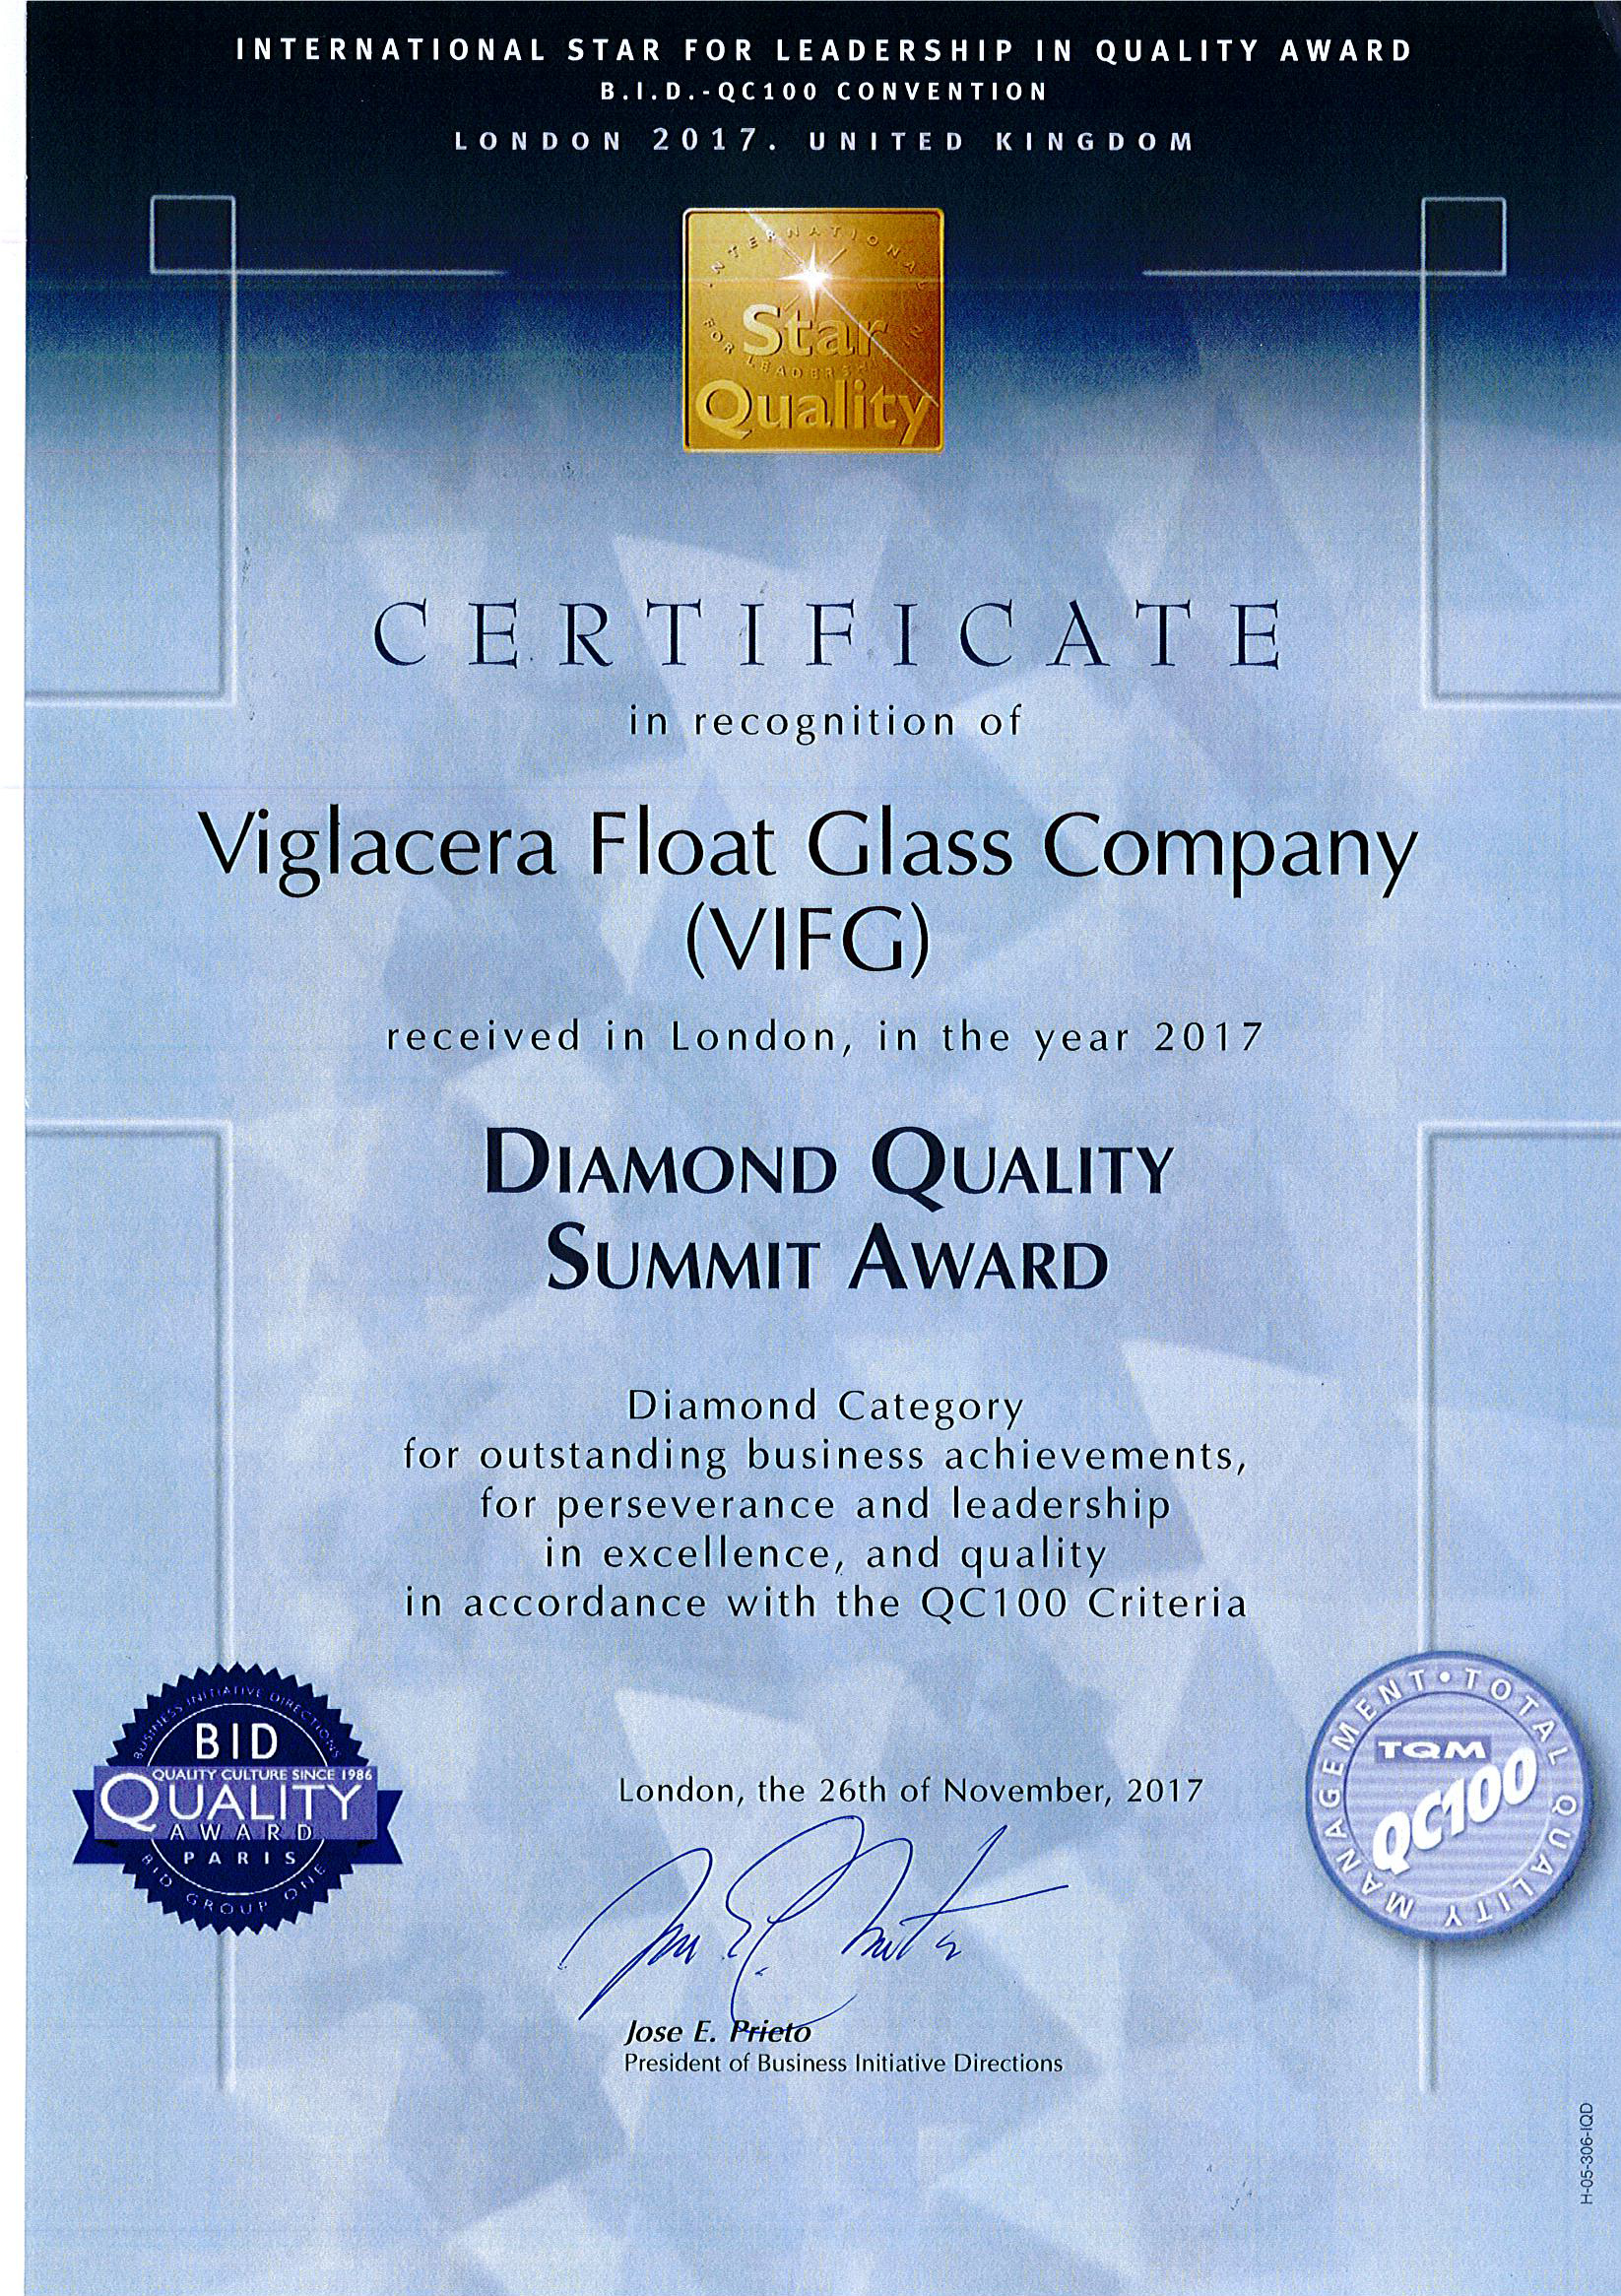 Diamond Quality Summit Award